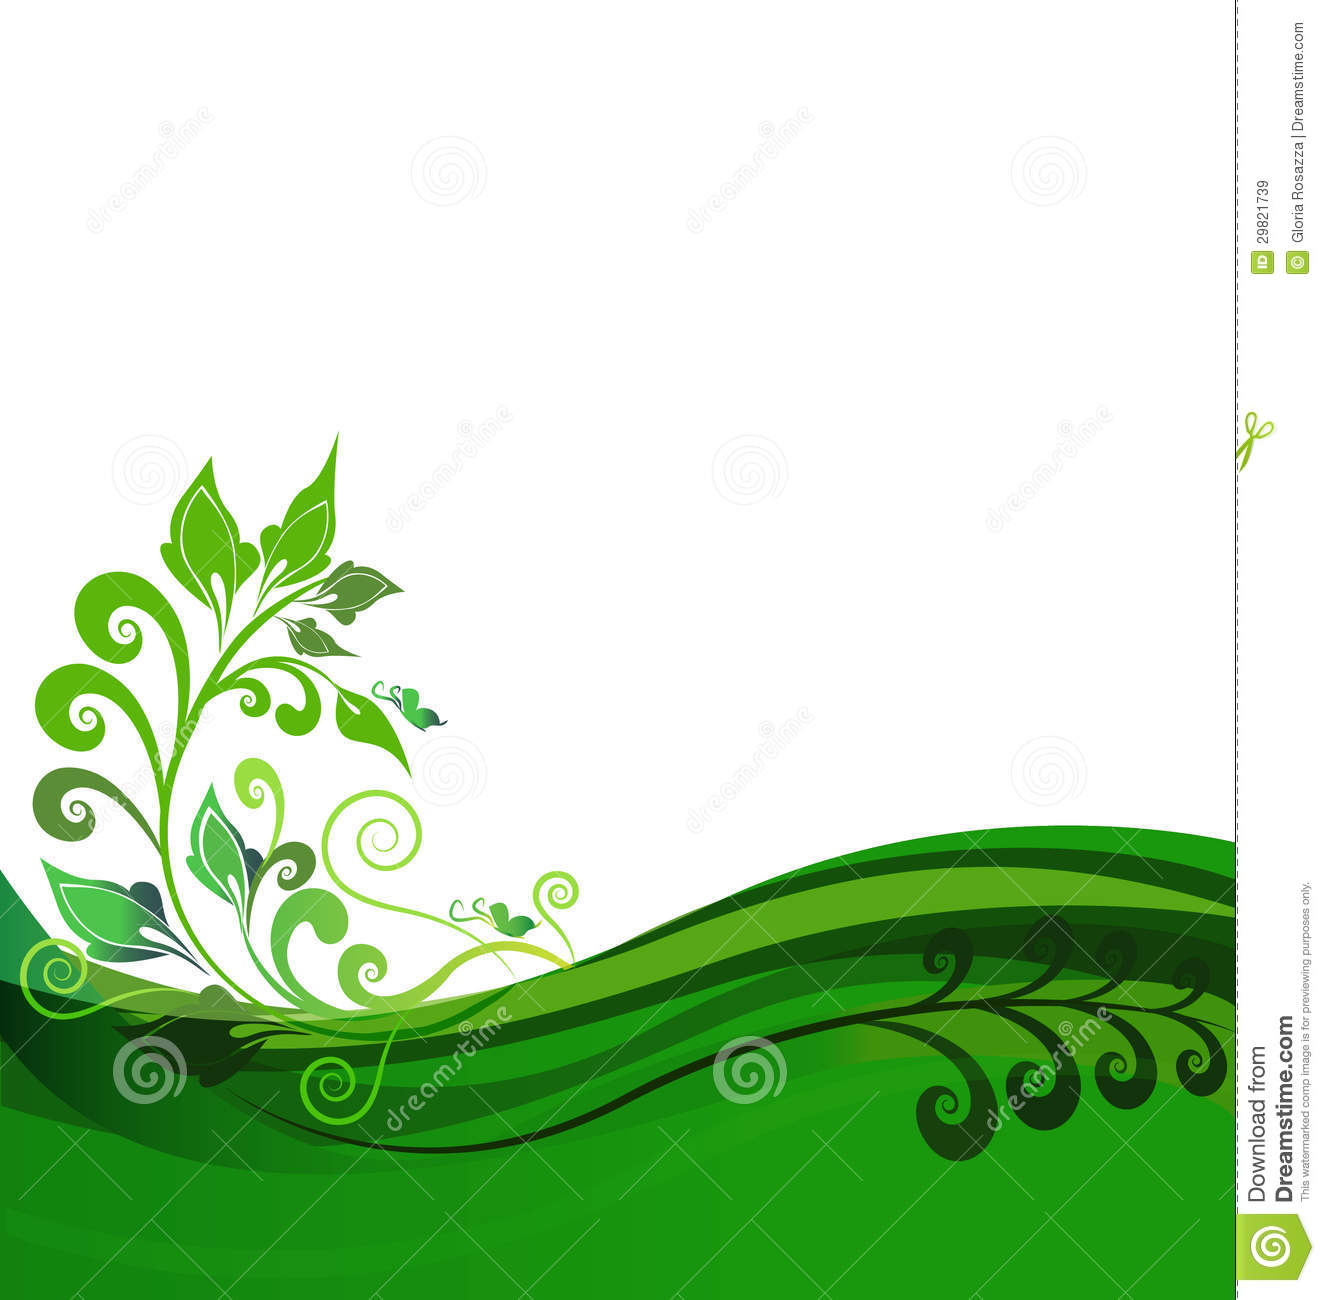 Green Floral Background Design Royalty Free Stock Images - Image ...